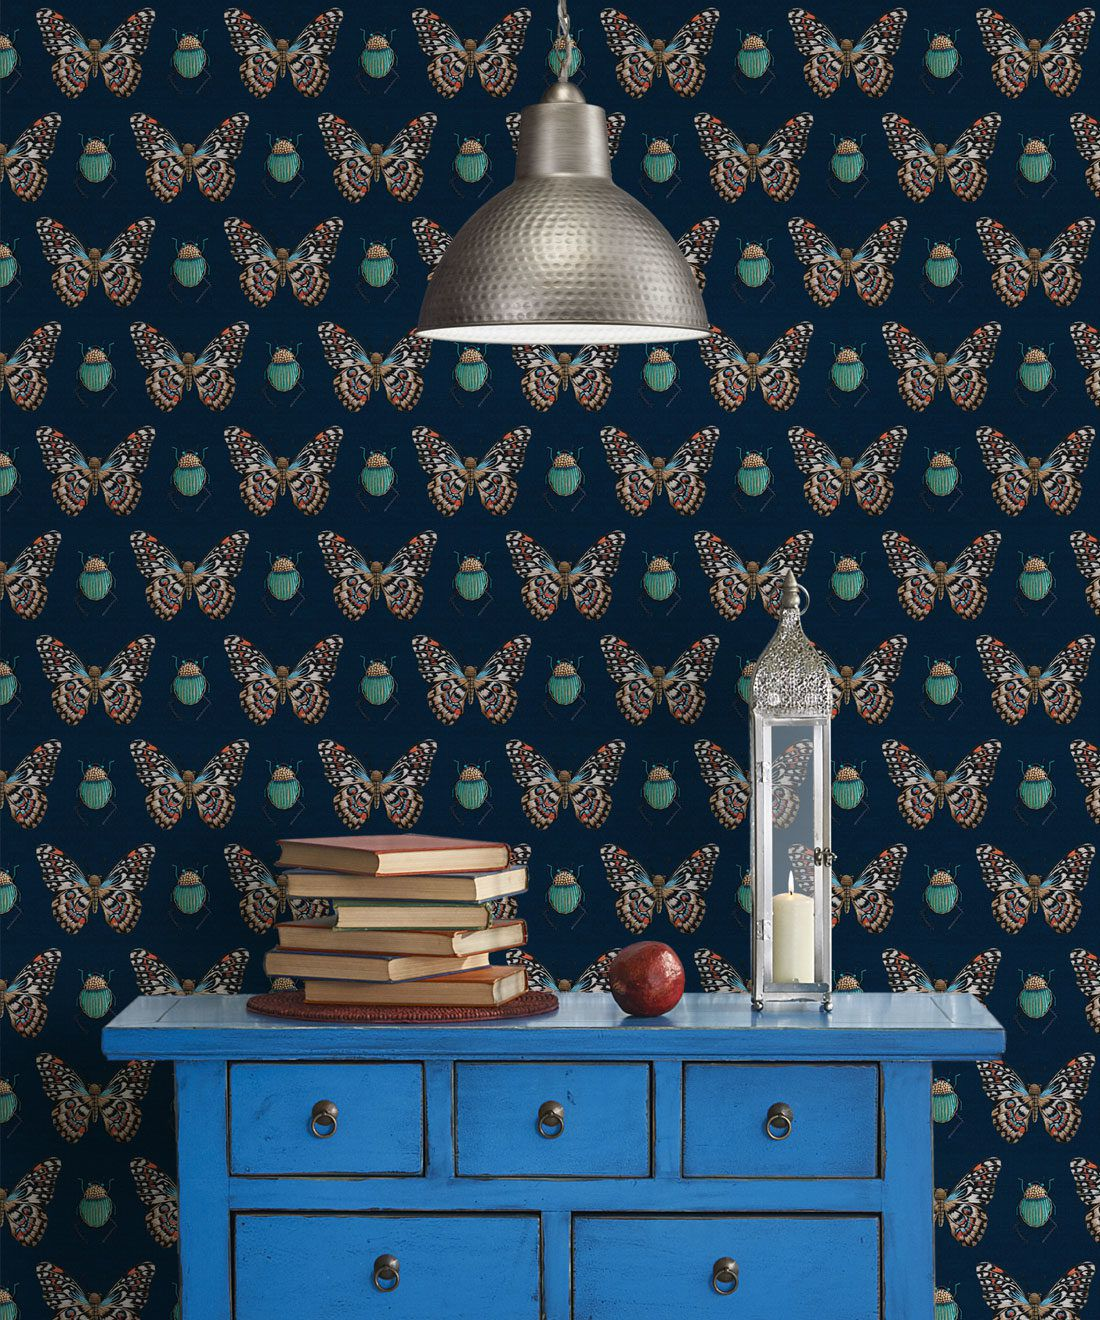 Bug & Butterfly Wallpaper • Milton & King USA • Insitu • Beetle Wallpaper